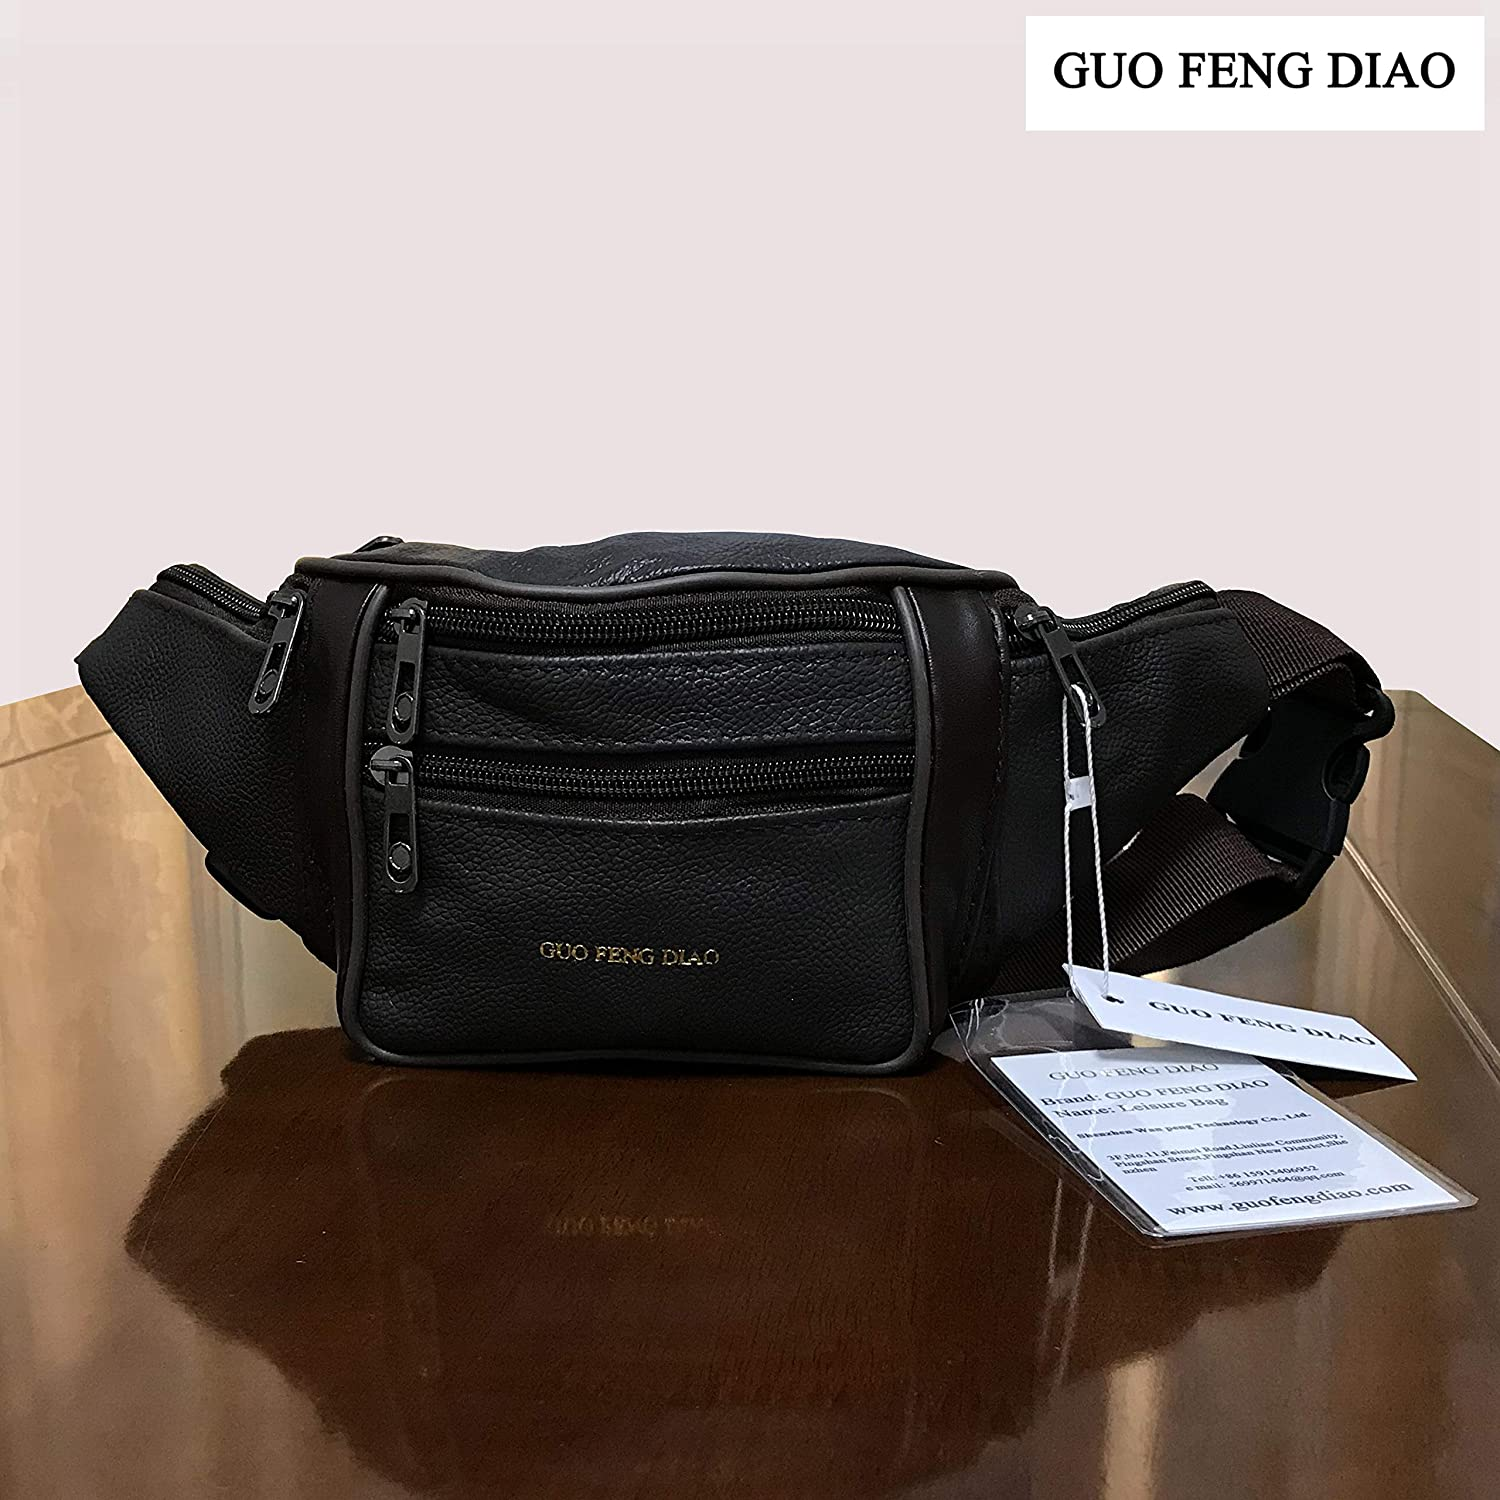 szwpalenHK GUO FENG DIAO Fanny Pack Unisex Belt Bag Waist Bag Outdoors & Gym Hiking Cycling Tool Kit Multifunction Genuine Leather Pouch for Motorcycle Bike